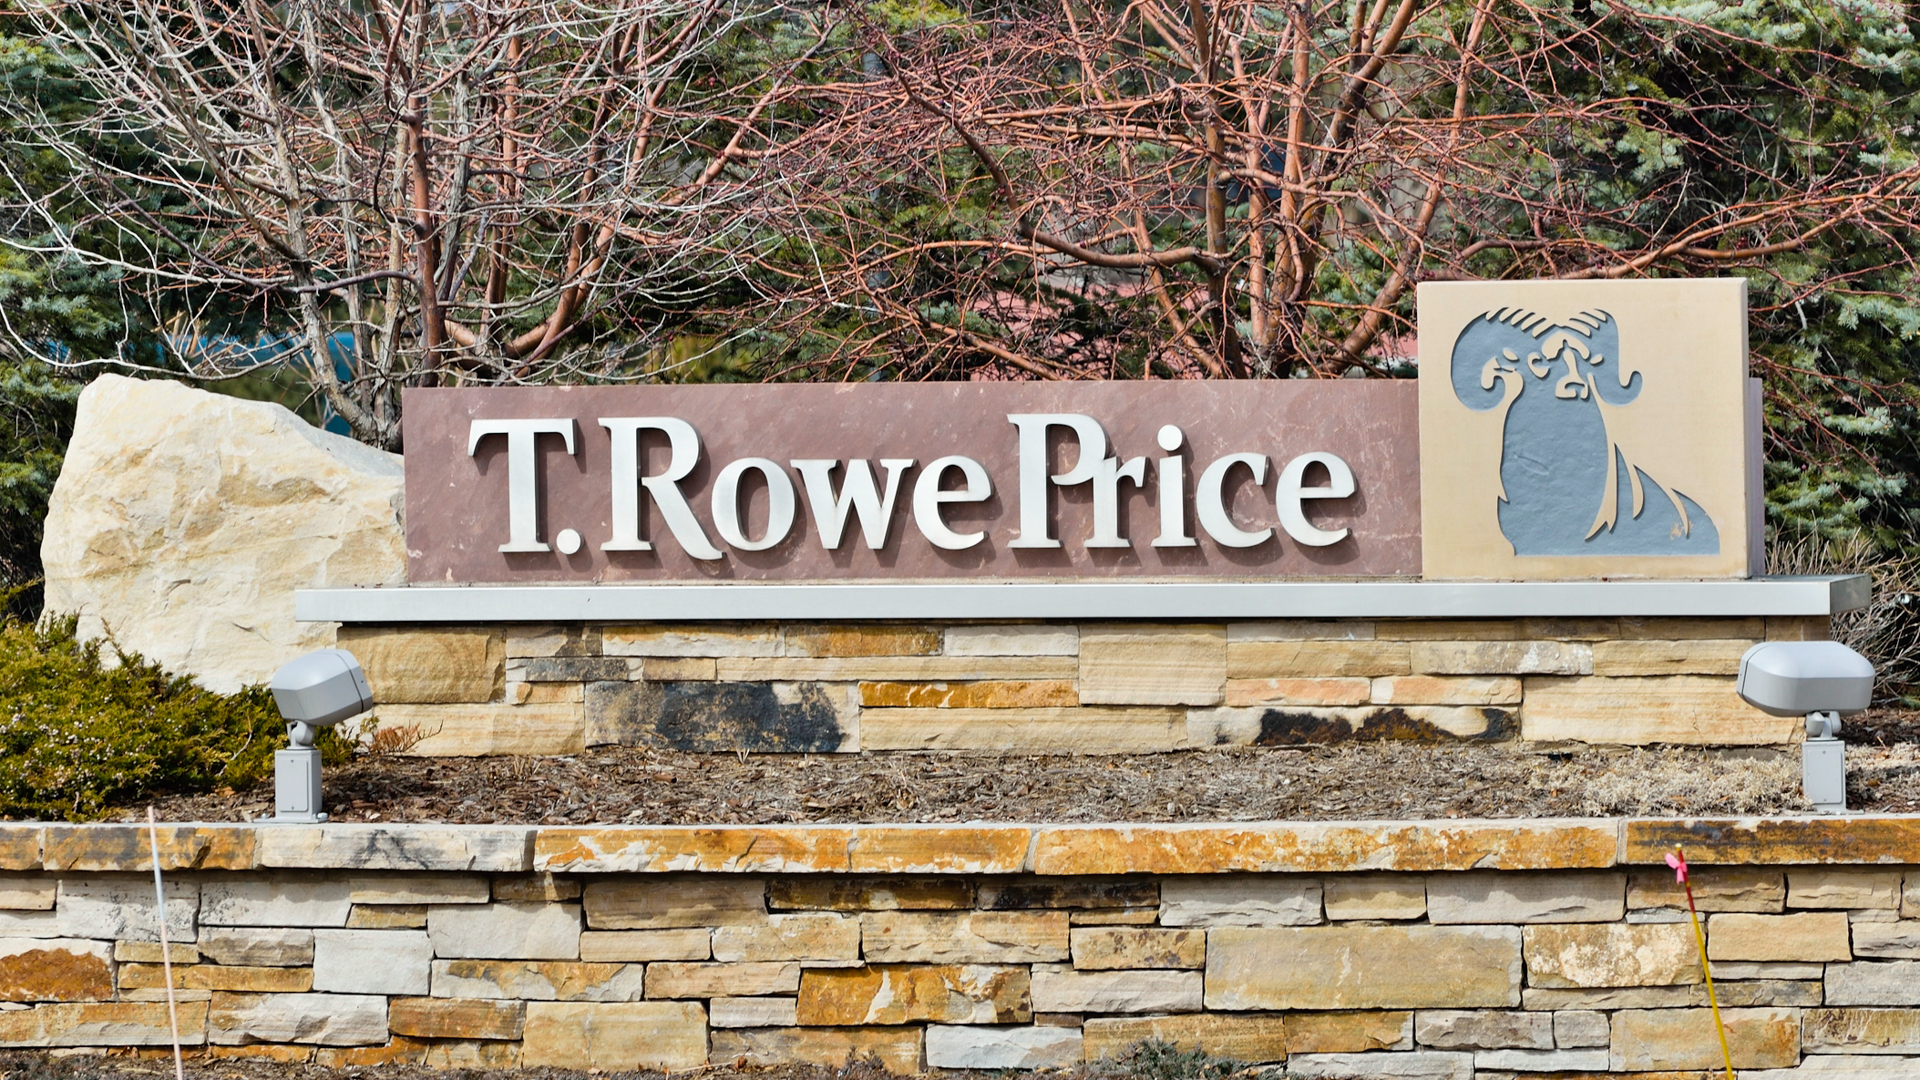 T. Rowe Price Review 2020: Is It the Right Brokerage for You?